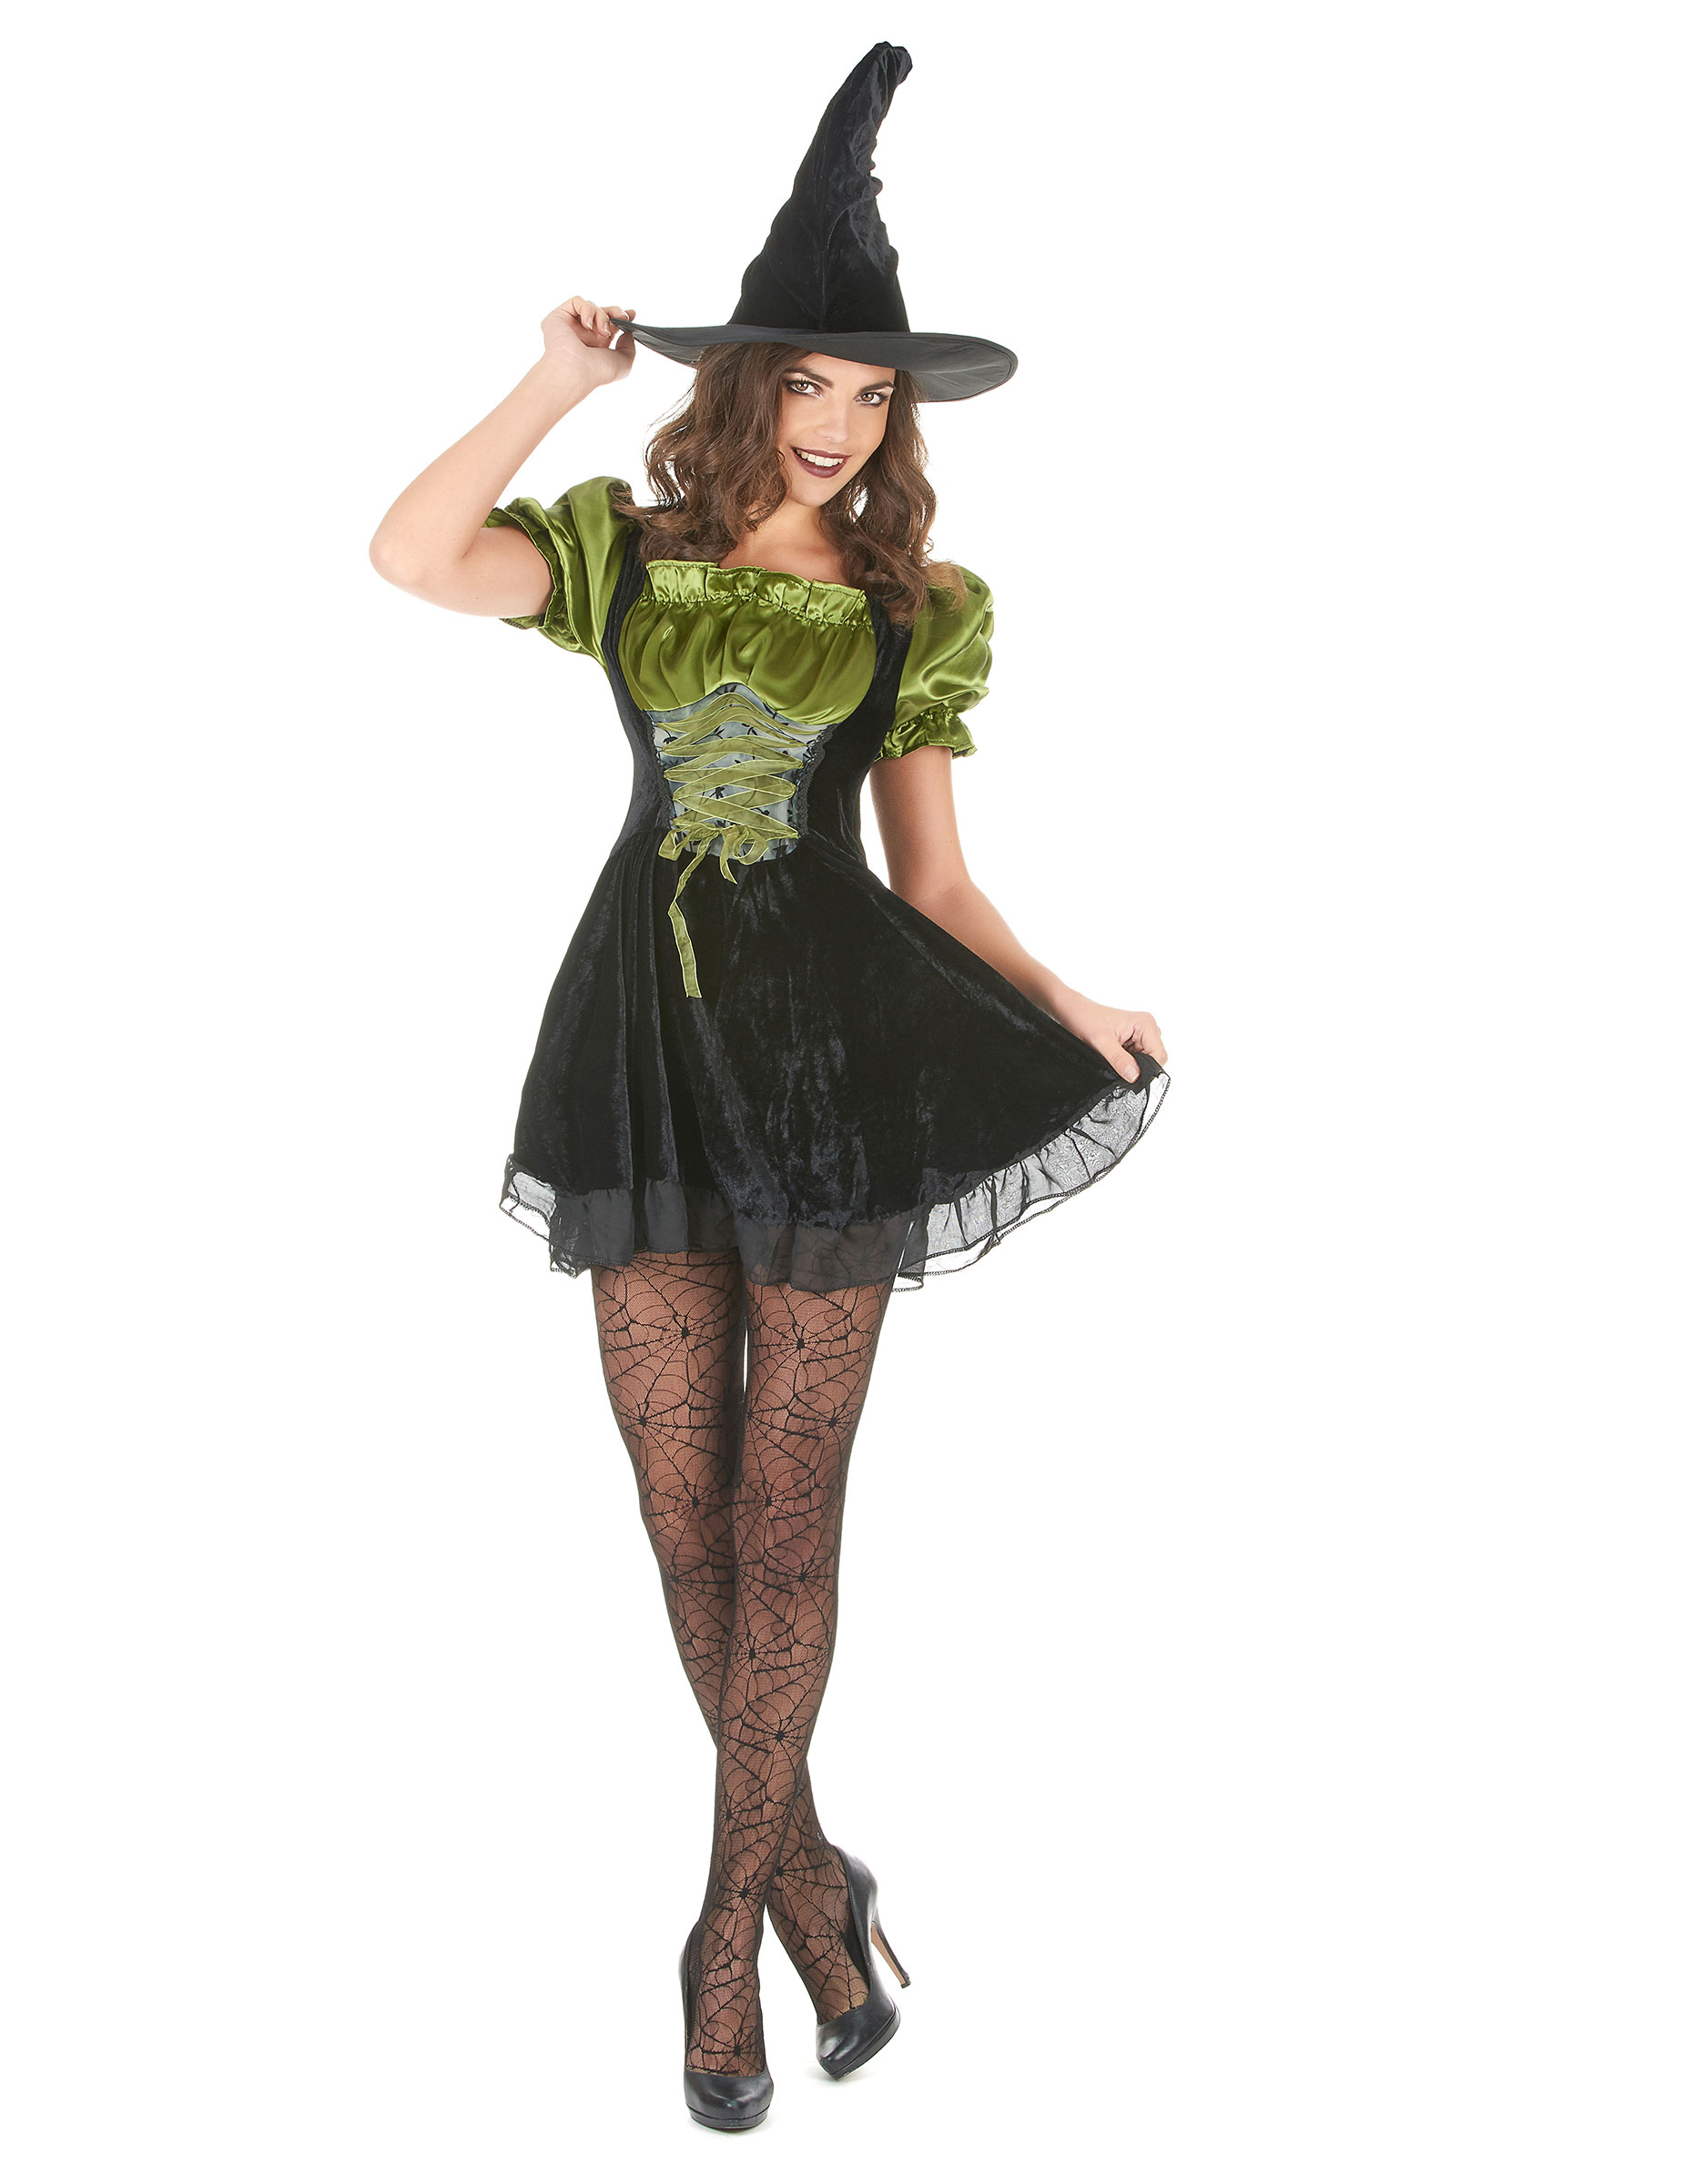 D guisement sorci re adulte halloween deguise toi achat de d guisements adultes - Deguisement halloween adulte ...